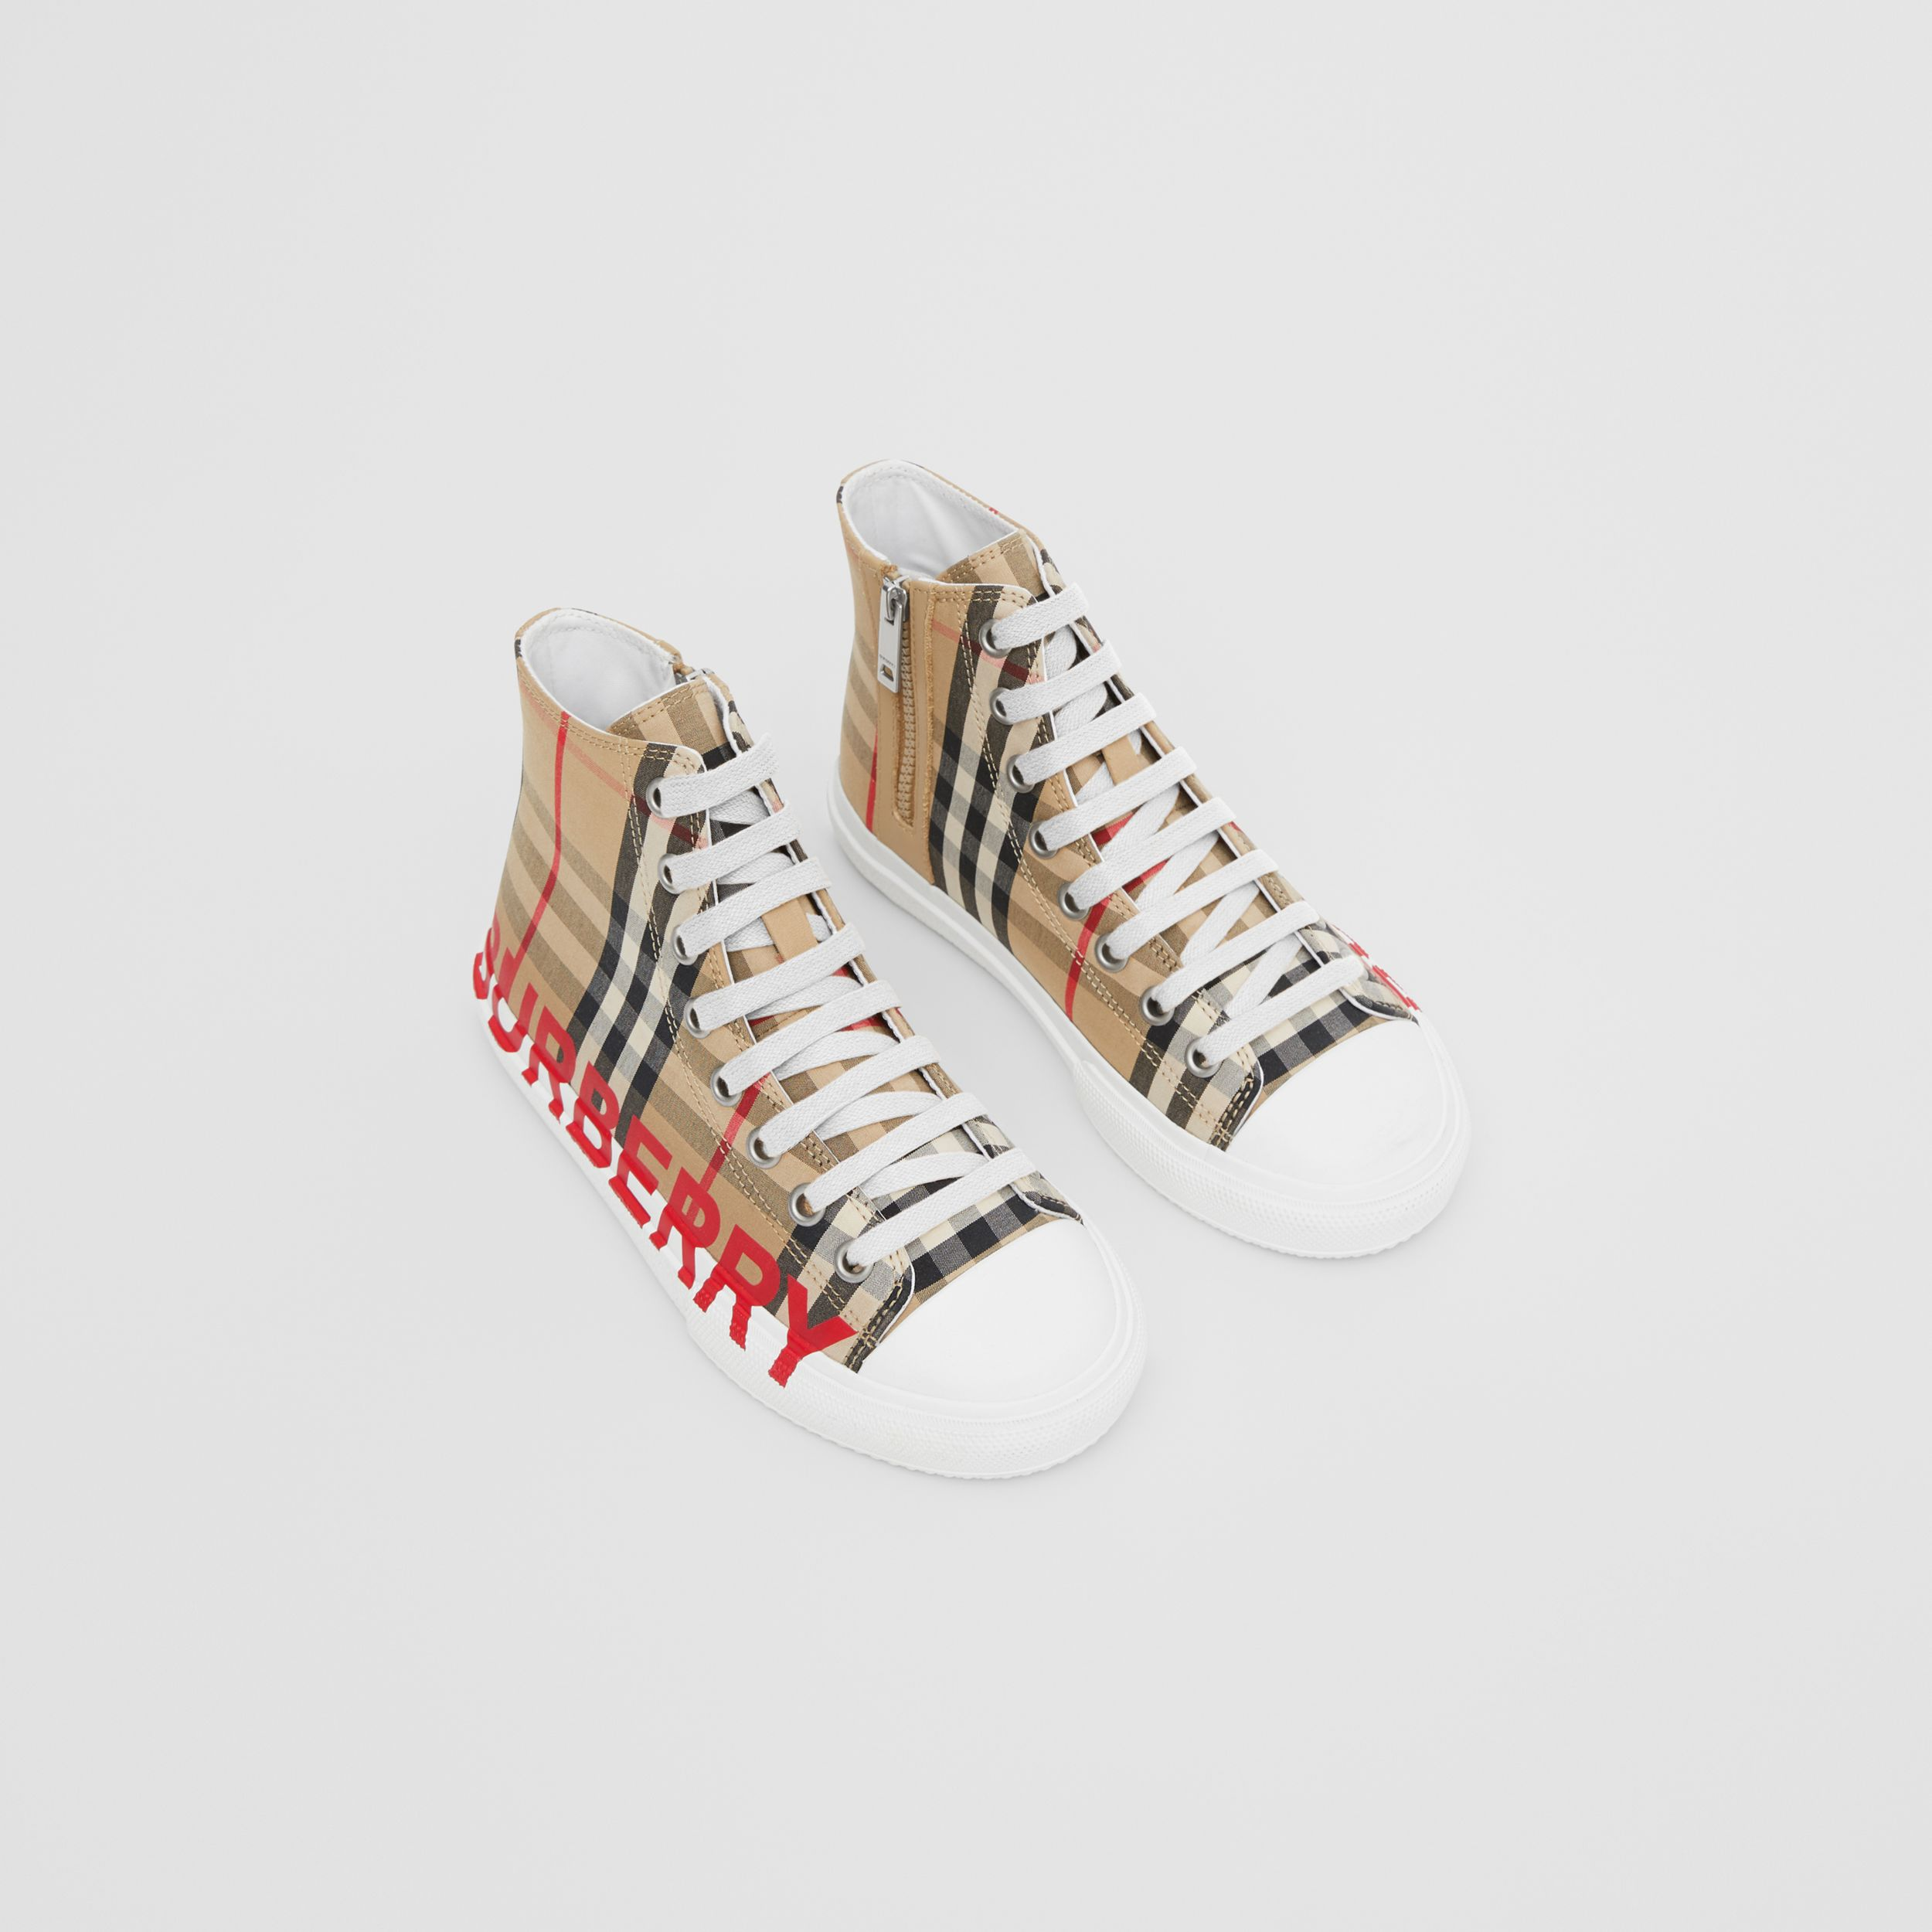 Logo Print Vintage Check High-top Sneakers in Archive Beige - Children | Burberry - 1